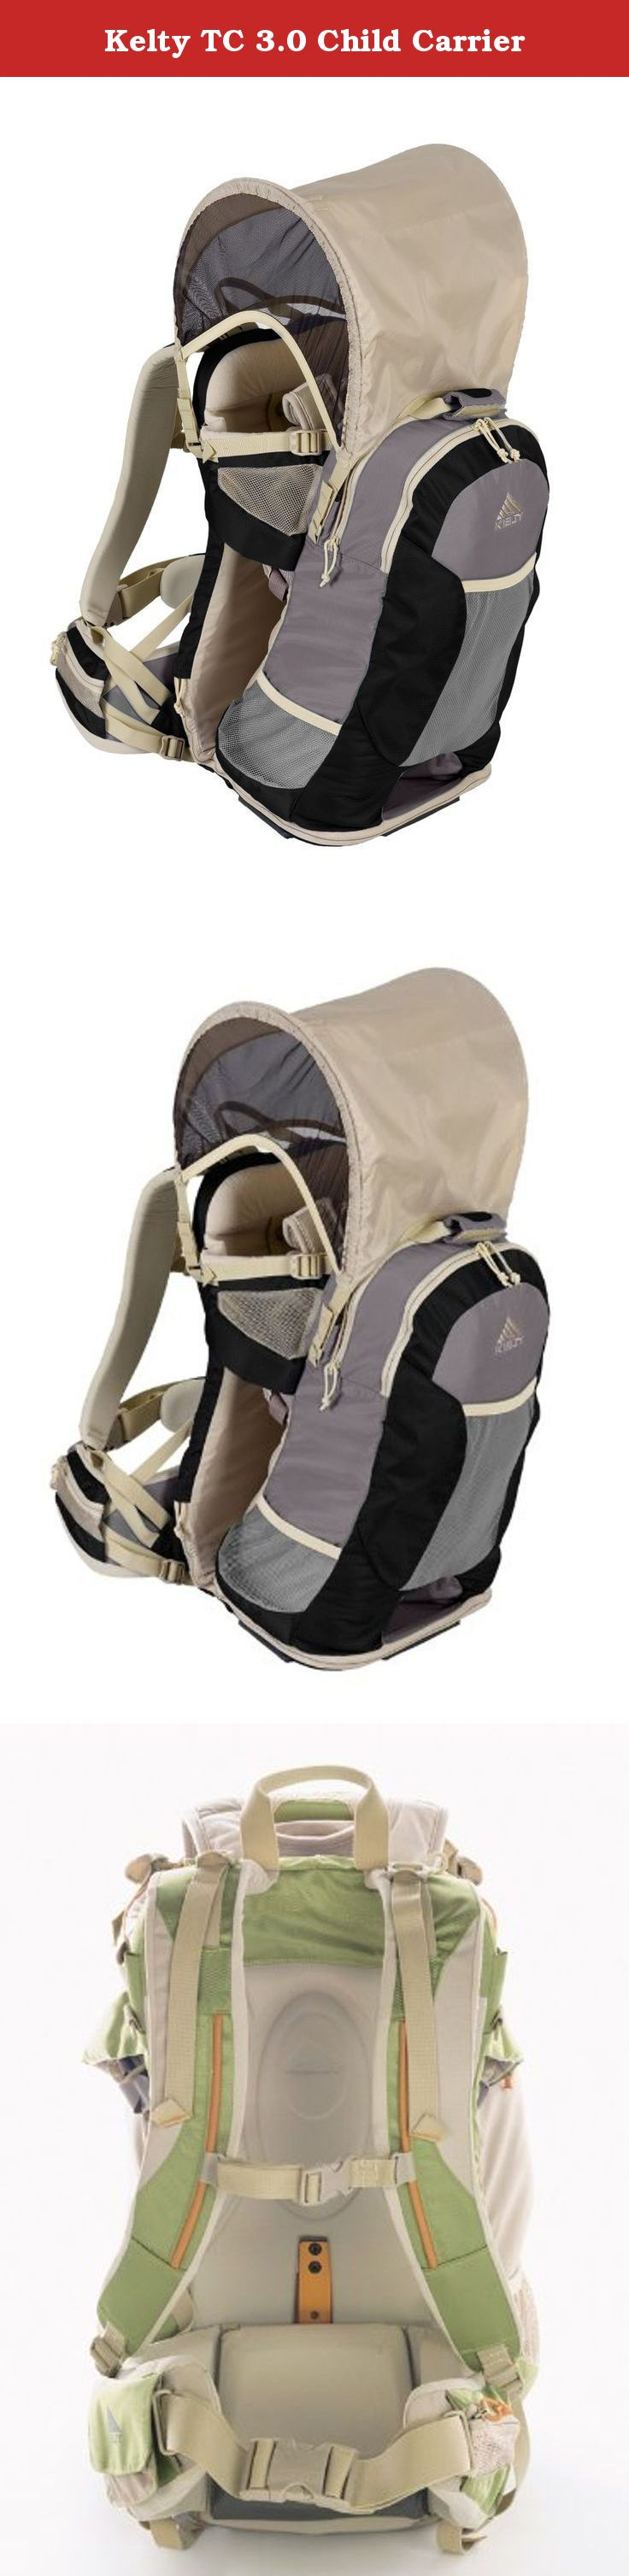 08f6a94768c Kelty Kids Adventure Backpack Carrier- Fenix Toulouse Handball